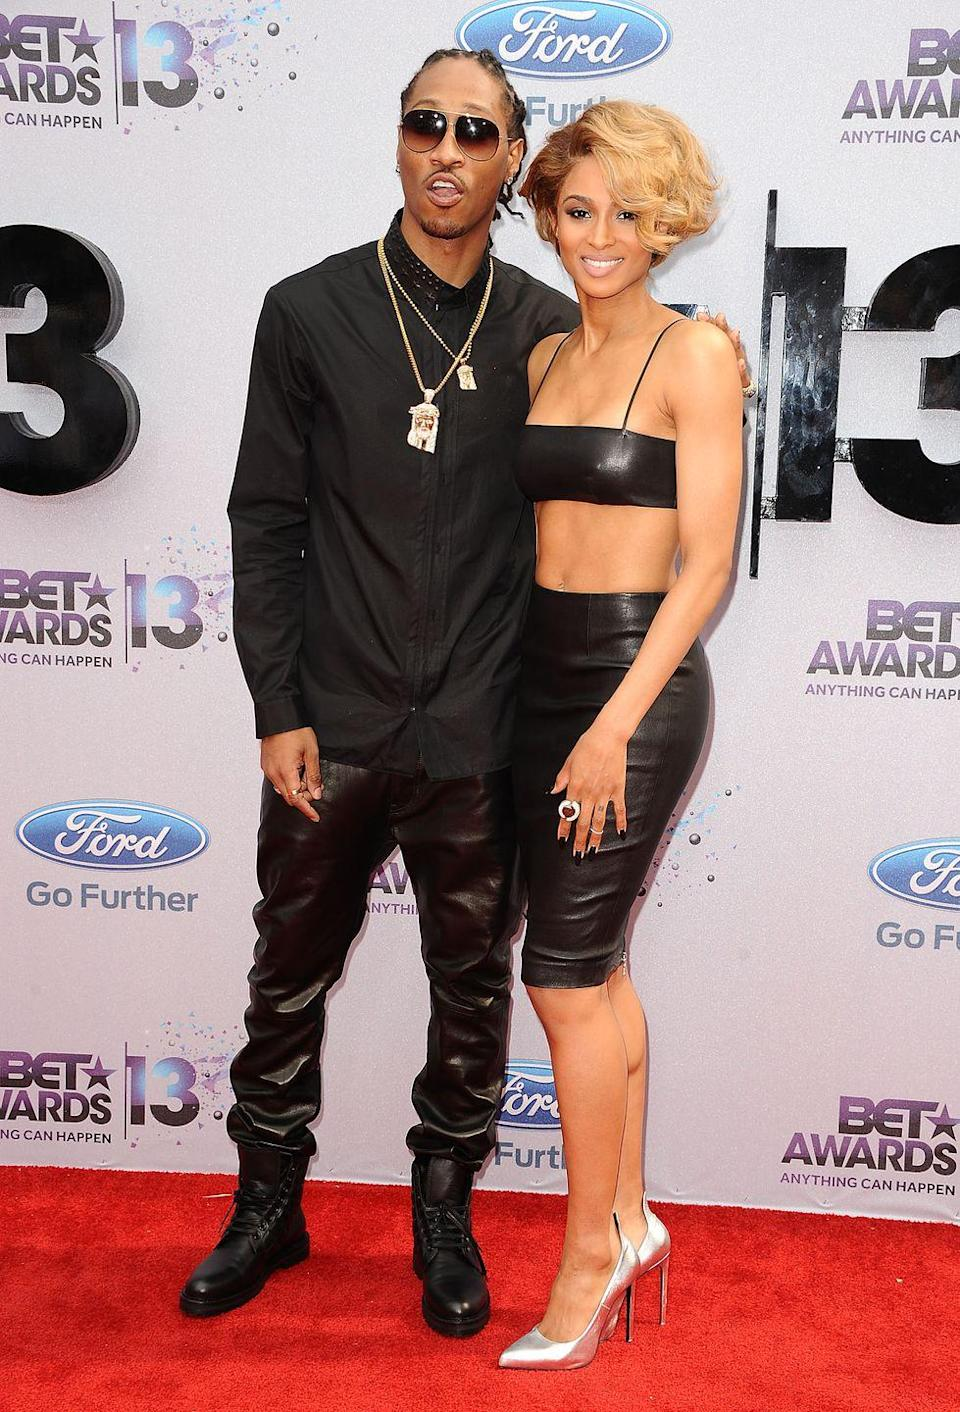 "<p>What could be a more fitting name for the child of hip-hop stars Ciara and Future than, well, a future Future? Of their first and only son together, Ciara told <em><a href=""https://www.usmagazine.com/celebrity-moms/news/ciara-gives-birth-singer-welcomes-first-child-with-future-2014205/"" rel=""nofollow noopener"" target=""_blank"" data-ylk=""slk:Us Weekly"" class=""link rapid-noclick-resp"">Us Weekly</a></em> settling on the first name, ""was kind of easy. But the middle name was a little hard for me…I went with what felt right in my soul and my gut. I didn't second guess it.""</p><p>The couple separated in 2014, and Ciara has since had another daughter, Sienna Princess, with now-husband/NFL star Russell Wilson.</p>"